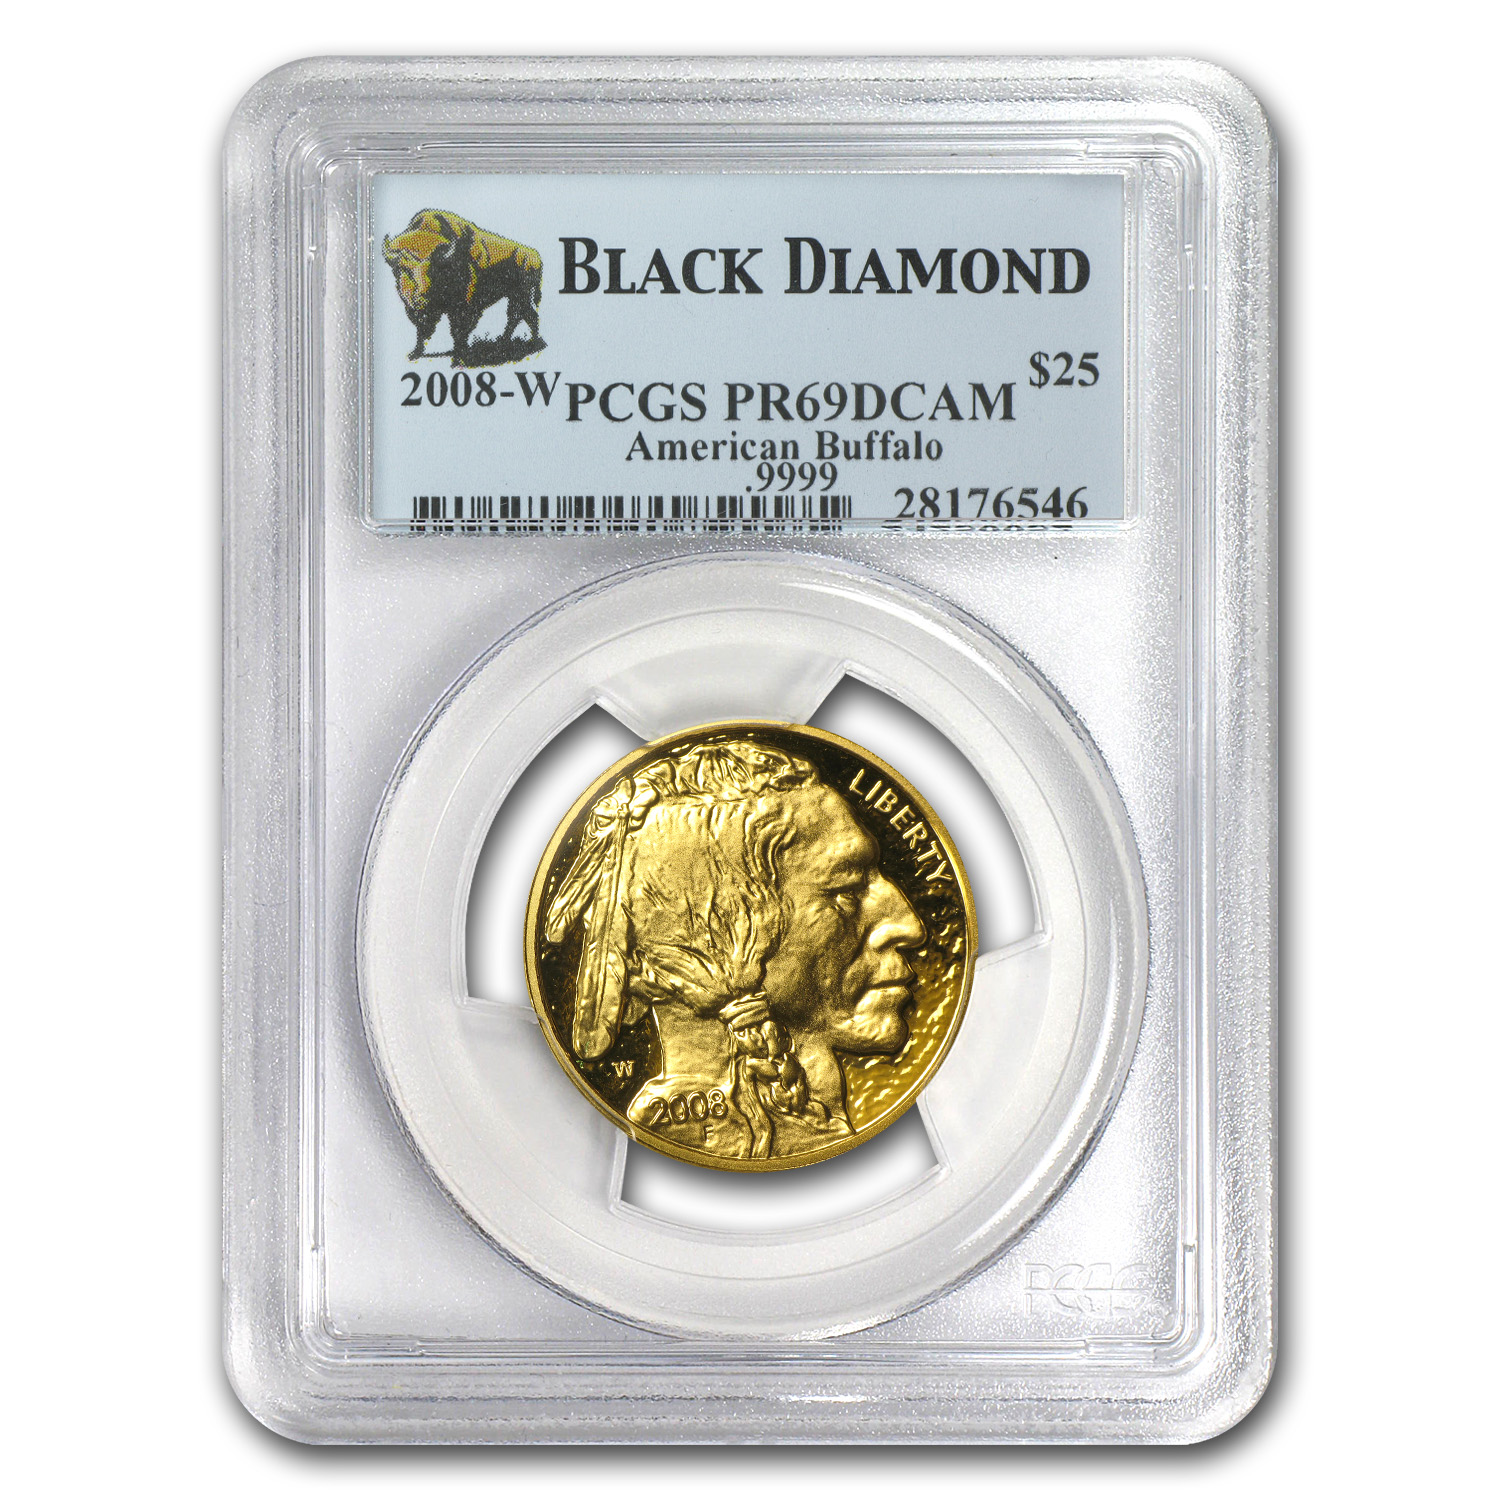 2008-W 1/2 oz Proof Gold Buffalo PR-69 PCGS (Black Diamond)